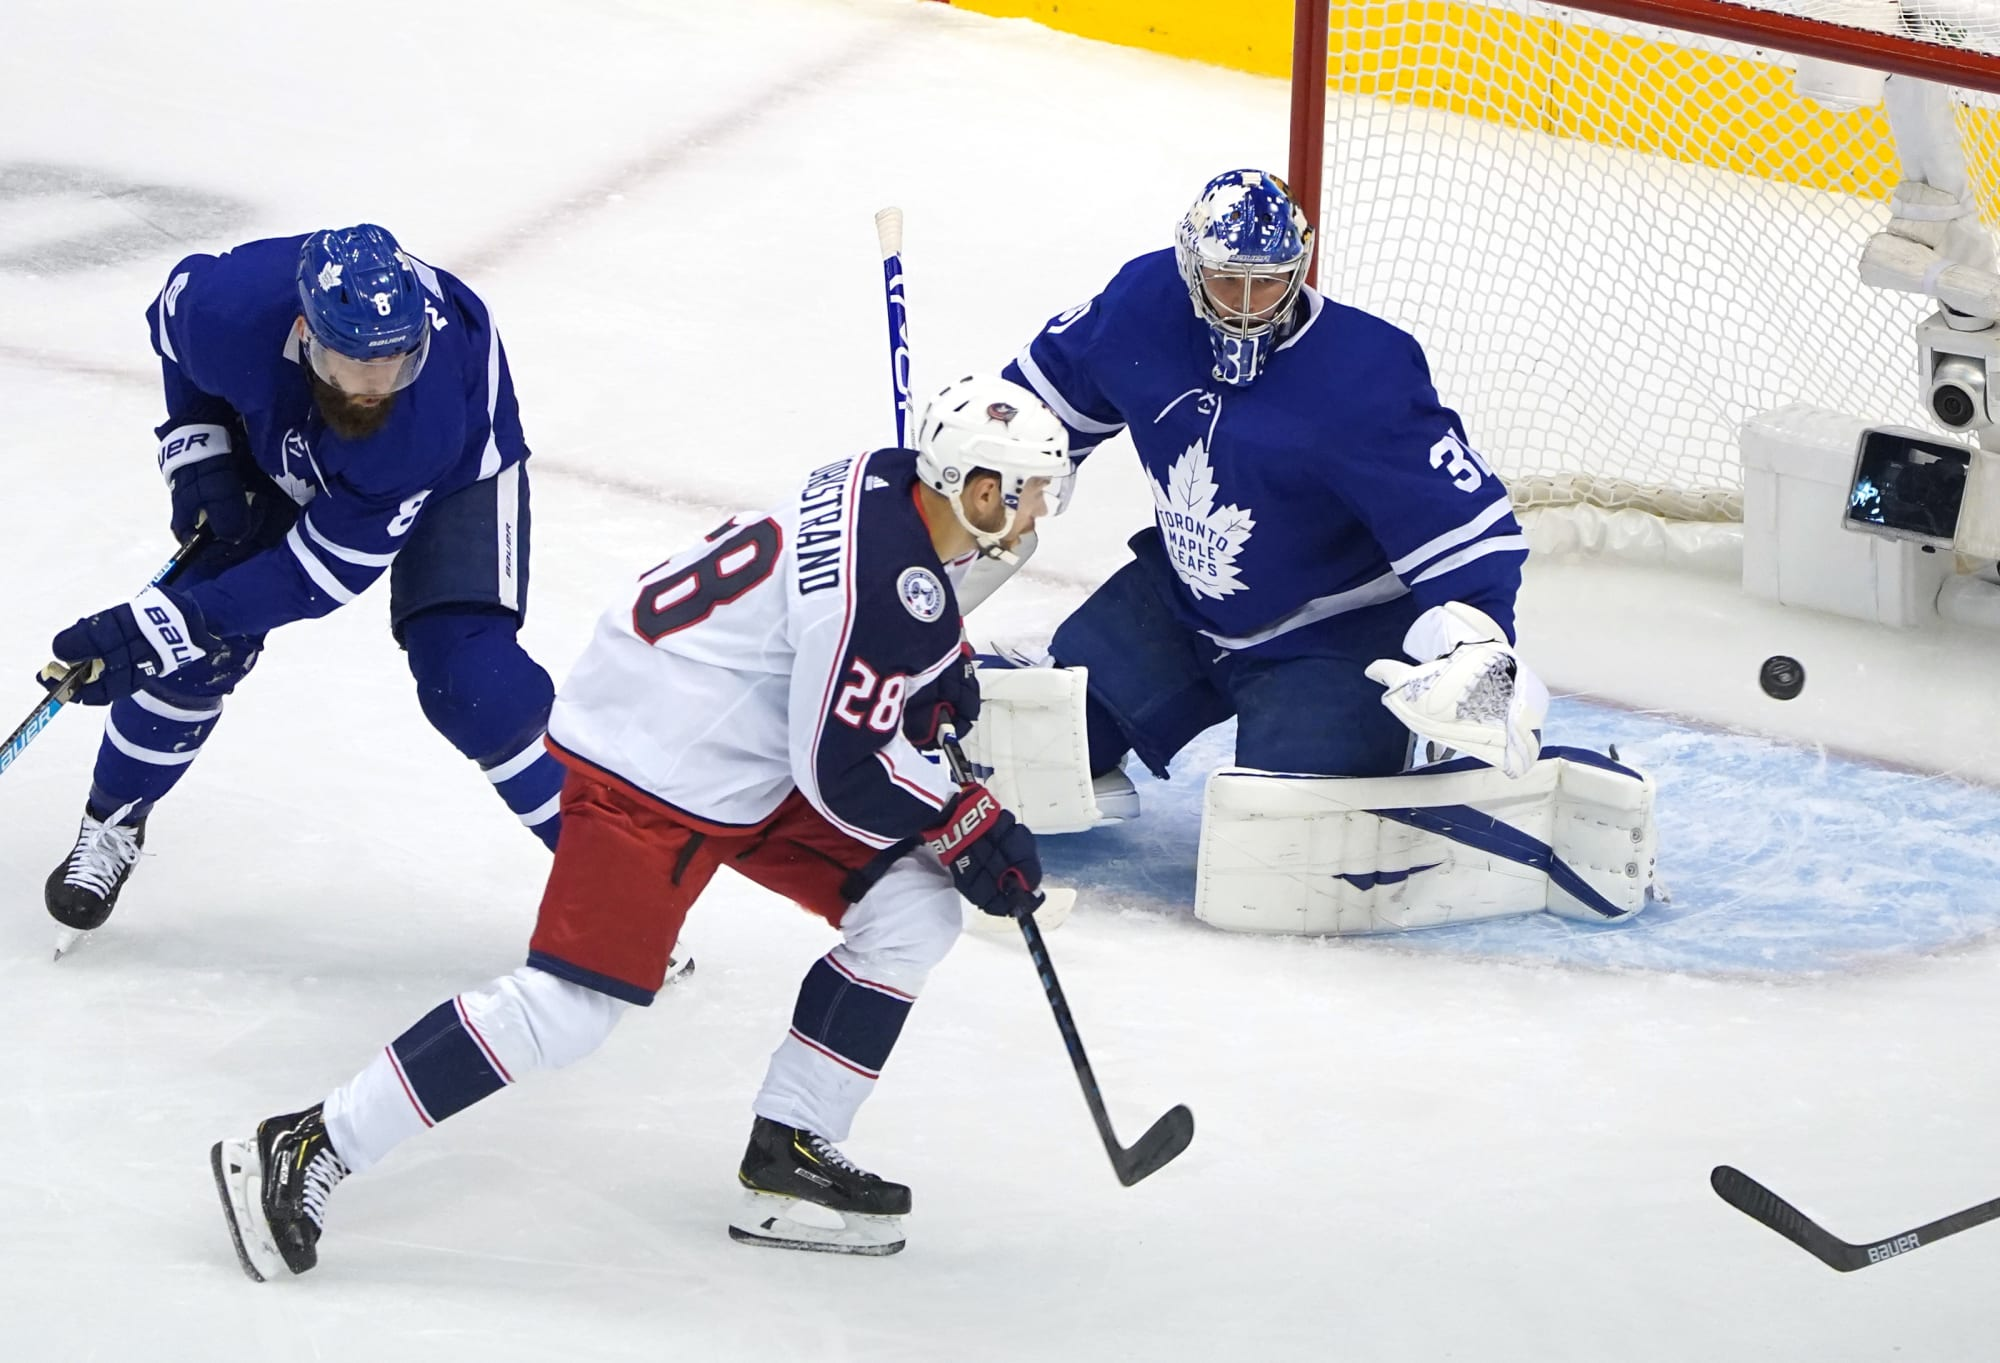 Stanley Cup Playoffs Maple Leafs Vs Blue Jackets Game 4 Live Stream